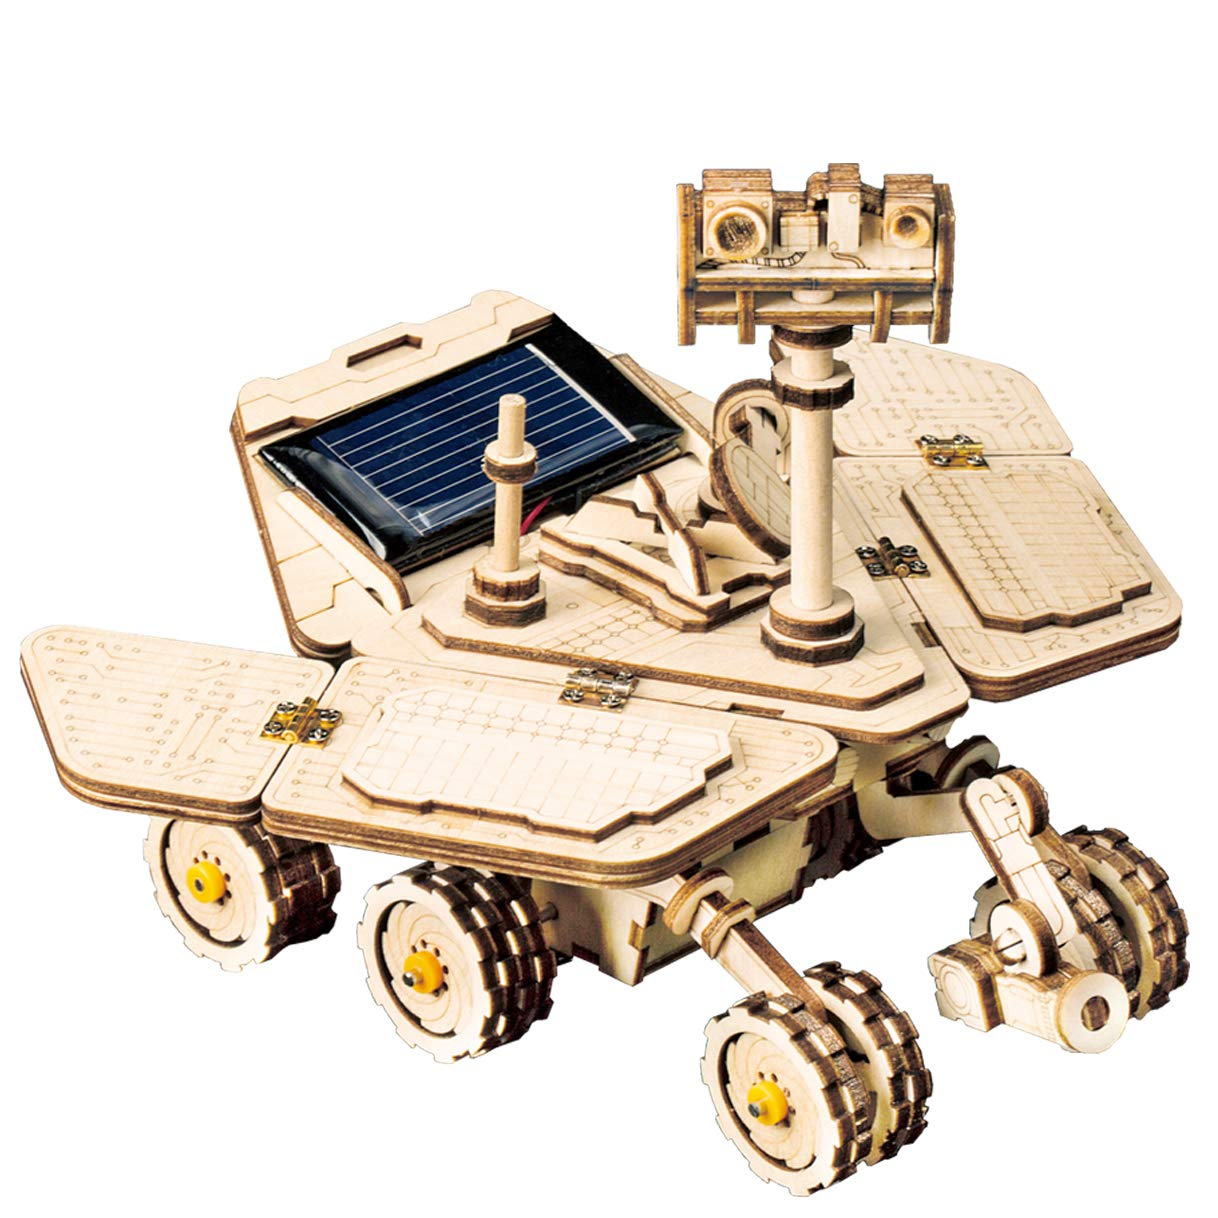 RoWood Space Hunting Vagabond Rover - DIY 3D Wooden Puzzle Model Solar Car Craft, Science Experiments Kit for Kids Ages 8+